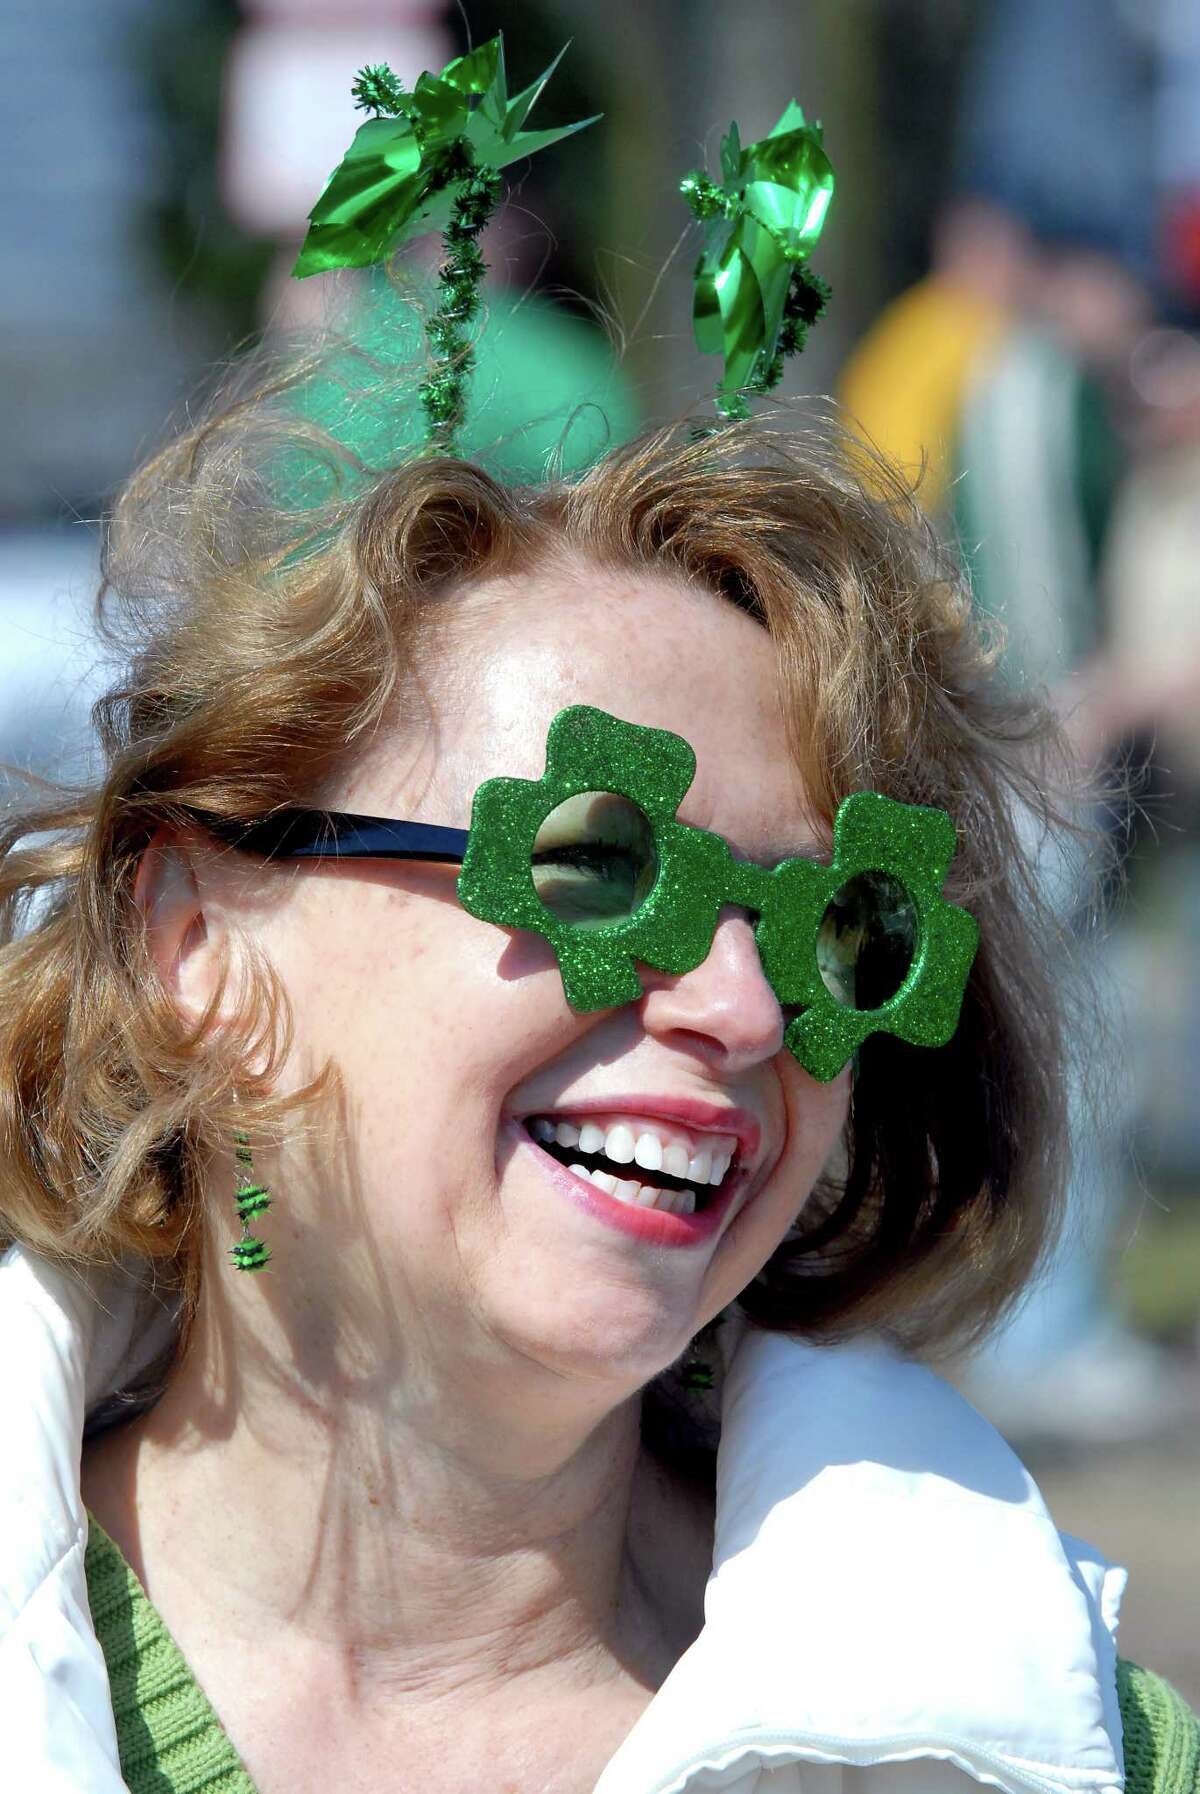 Martha Moffa of Milford gets ready before the St. Patrick's Day Parade in Milford on 3/21/2010. Photo by Arnold Gold AG0356E